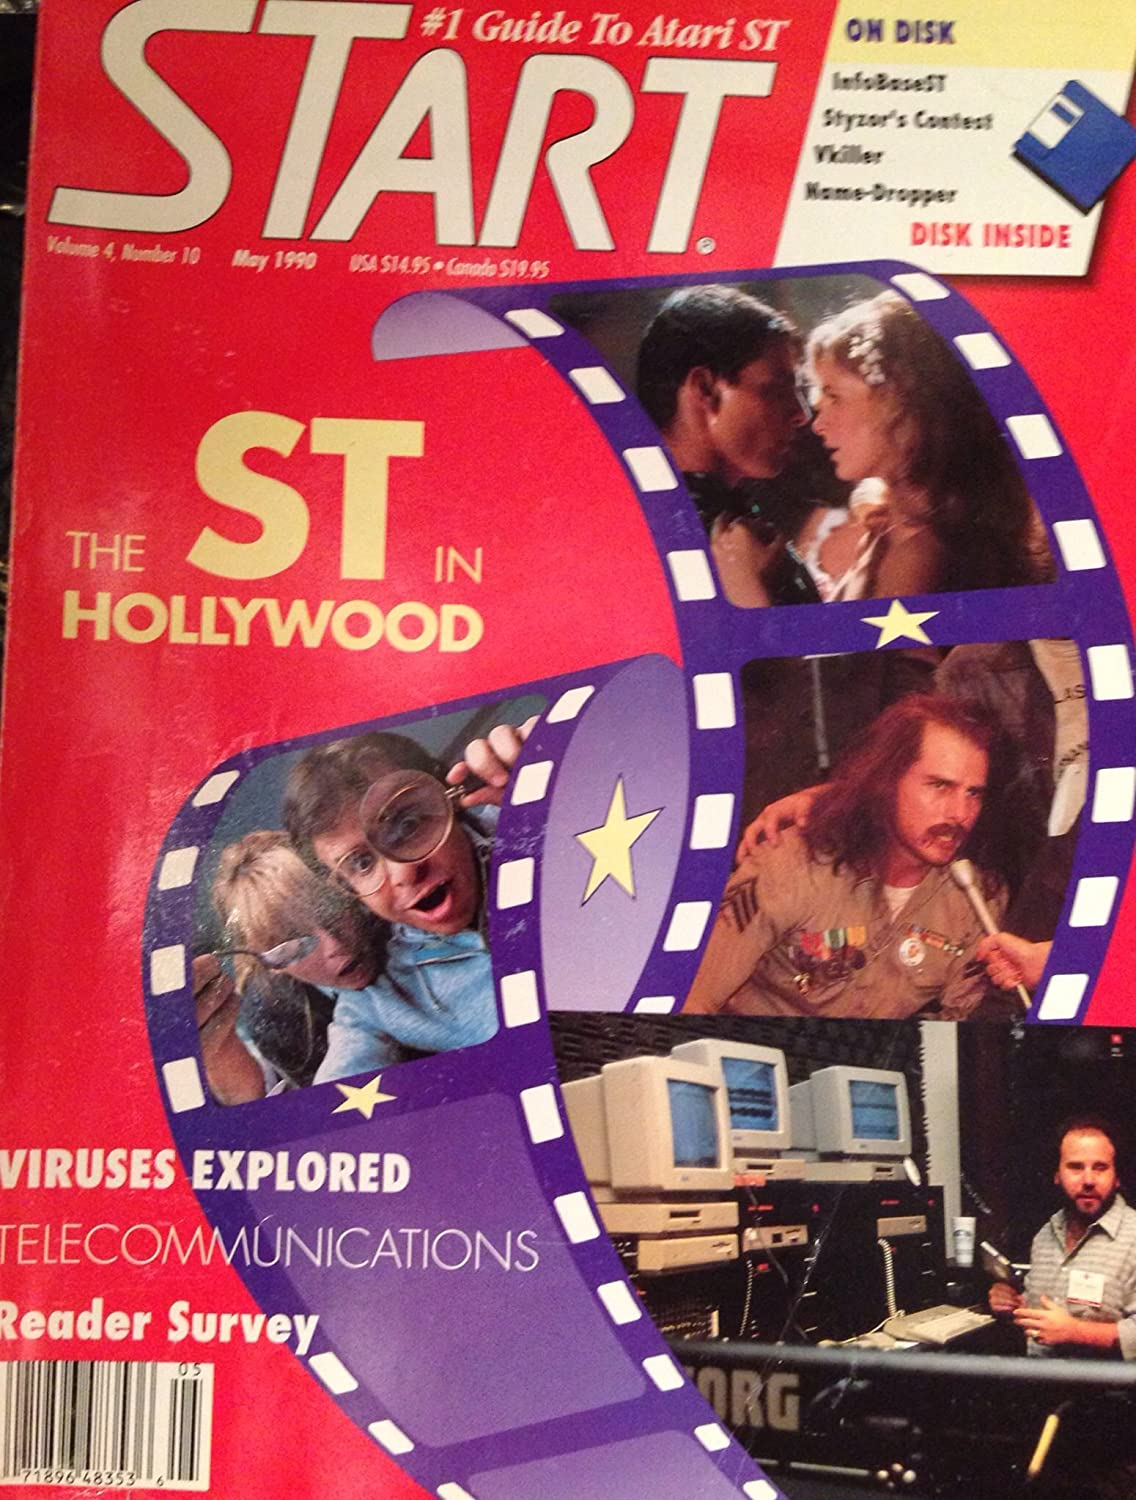 STart Magazine #1 Guide To Atari ST [ Vol. 4, No.10, May 1990 ]